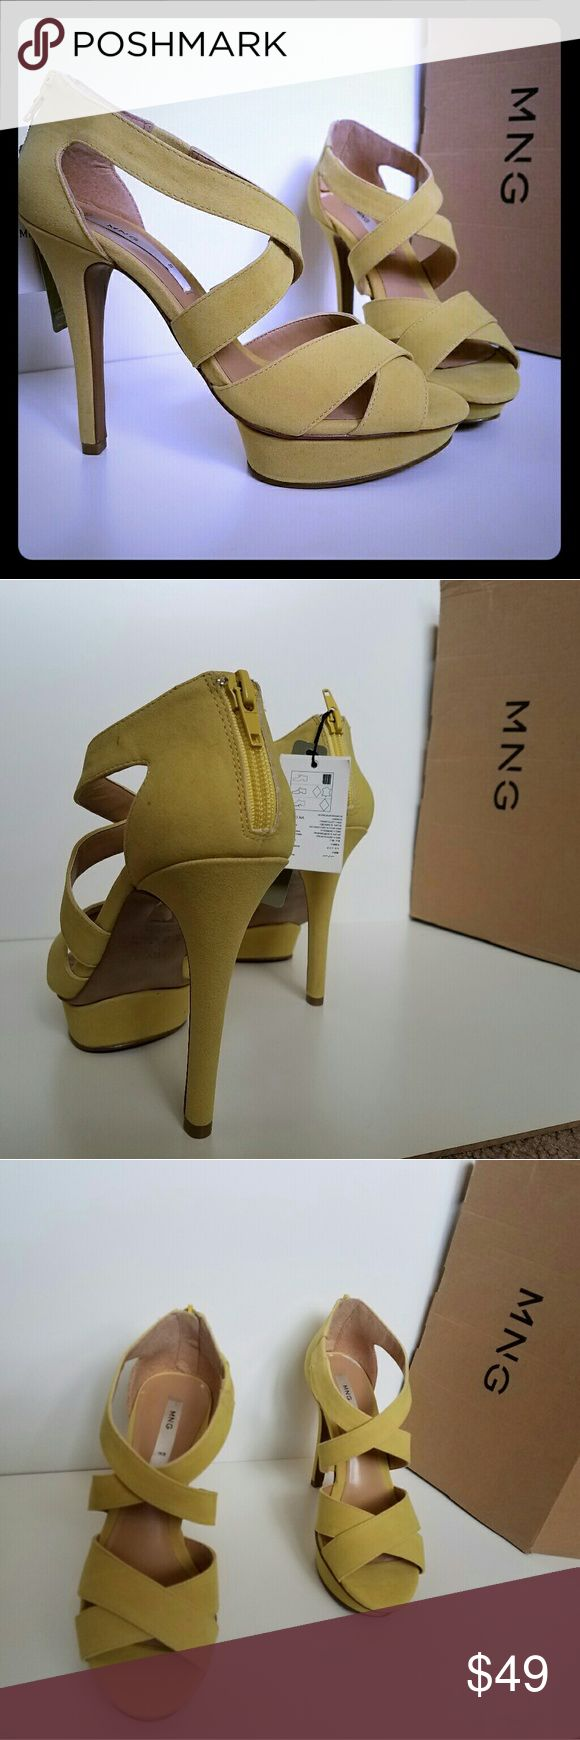 MANGO sandals heels Jimmy C Yellow Mango heels in great condition. Never used. Size 38 EUR/ 7.5 US. Mango Shoes Sandals